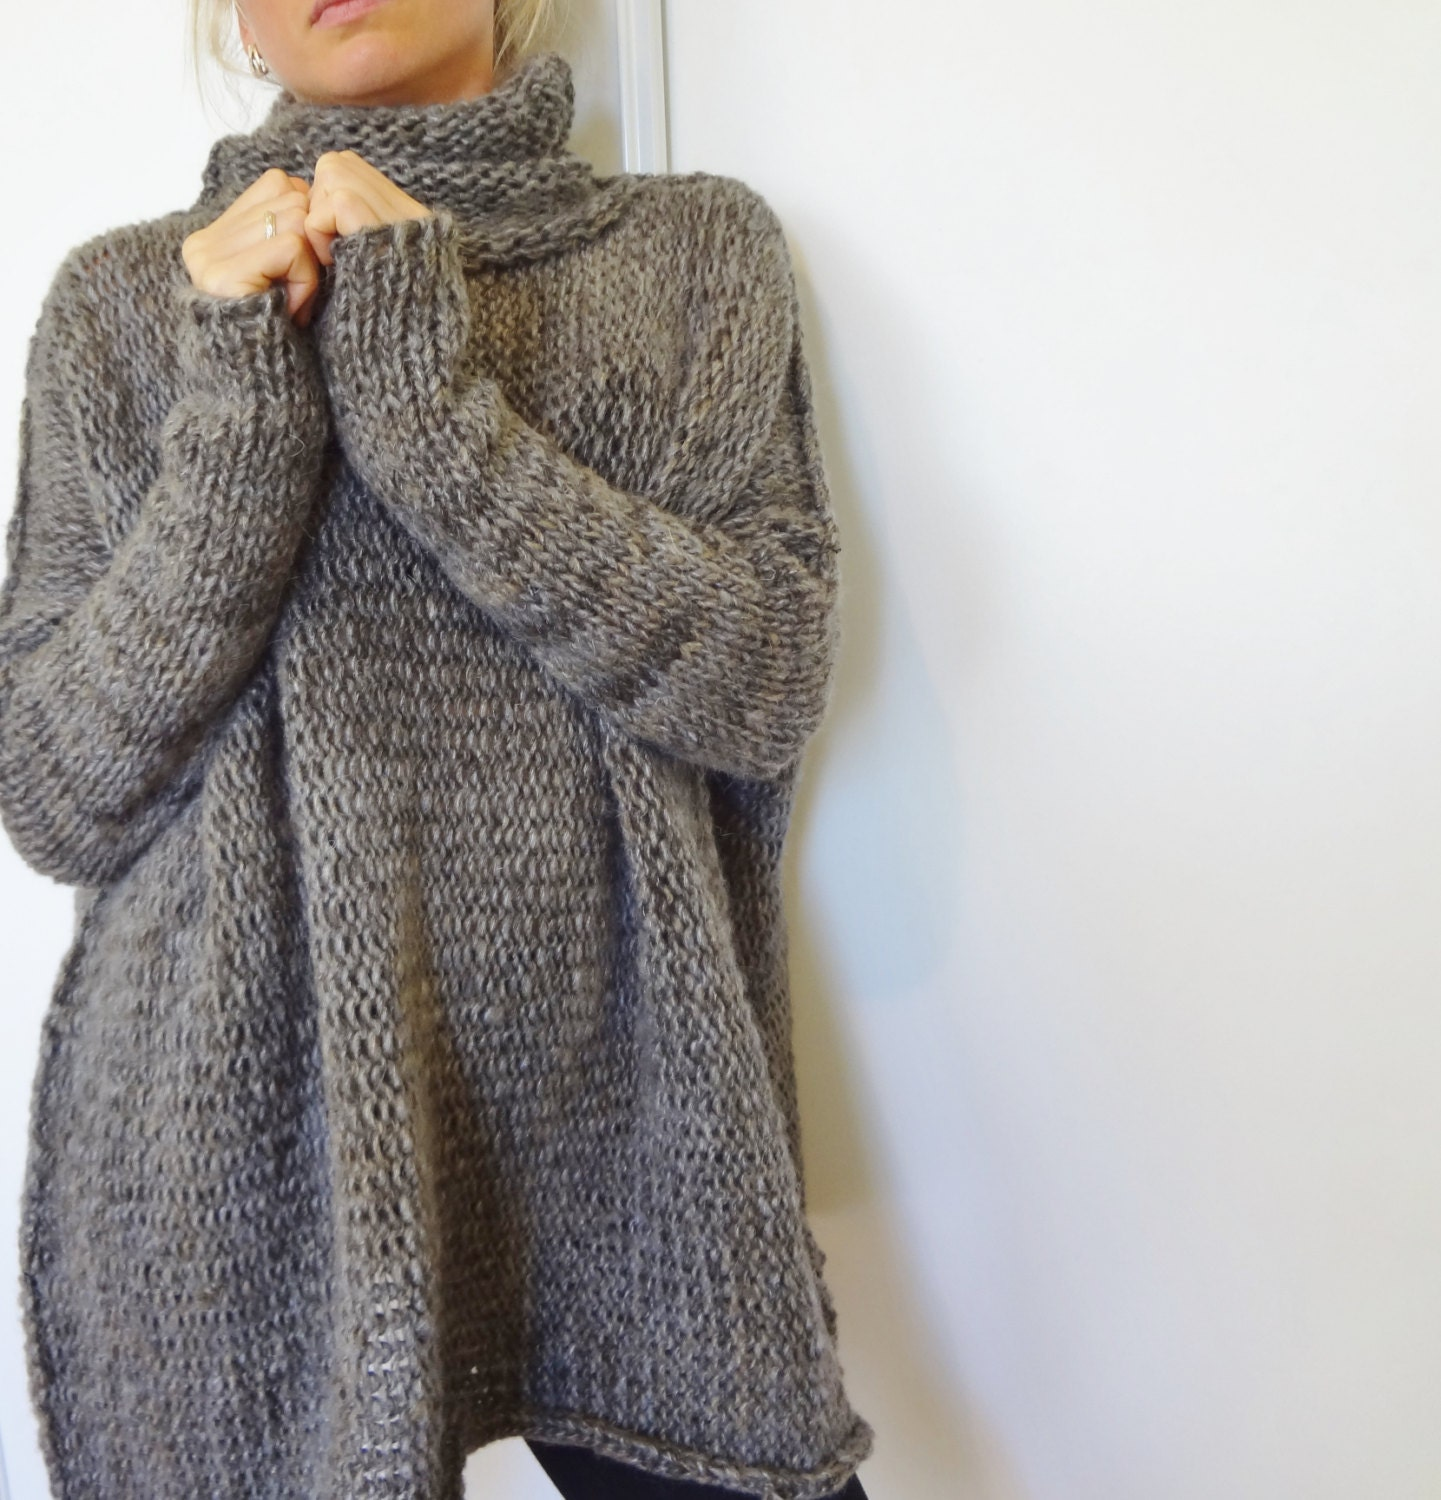 Knitting Patterns For Chunky Wool Sweaters : Womens Oversized Chunky Cable Knit Sweater - Bronze Cardigan